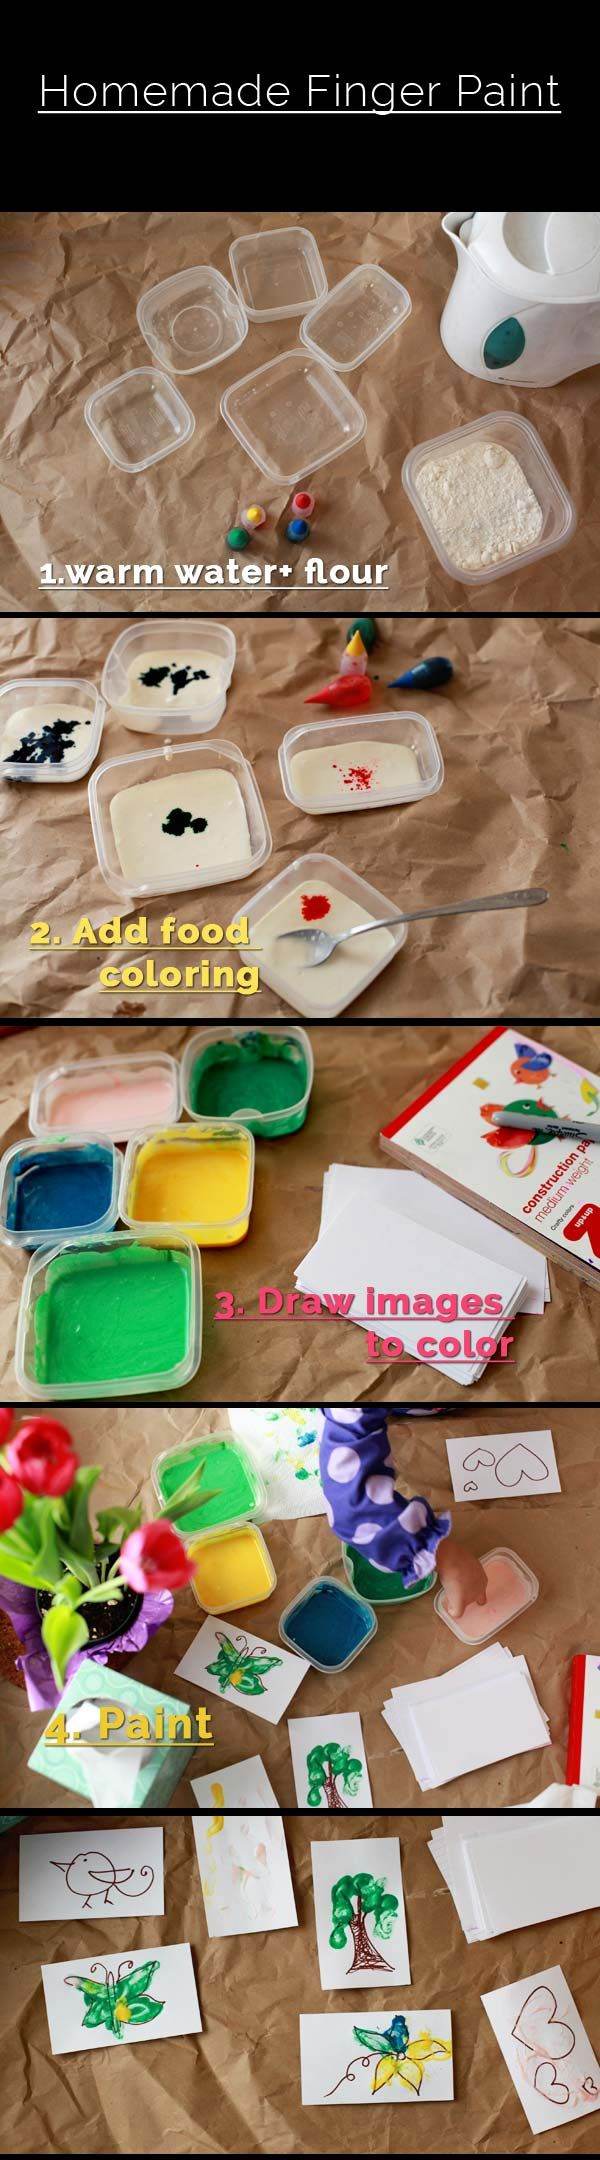 {Make it with your kids Monday #8: Homemade Finger Paints} | Smiling Colors